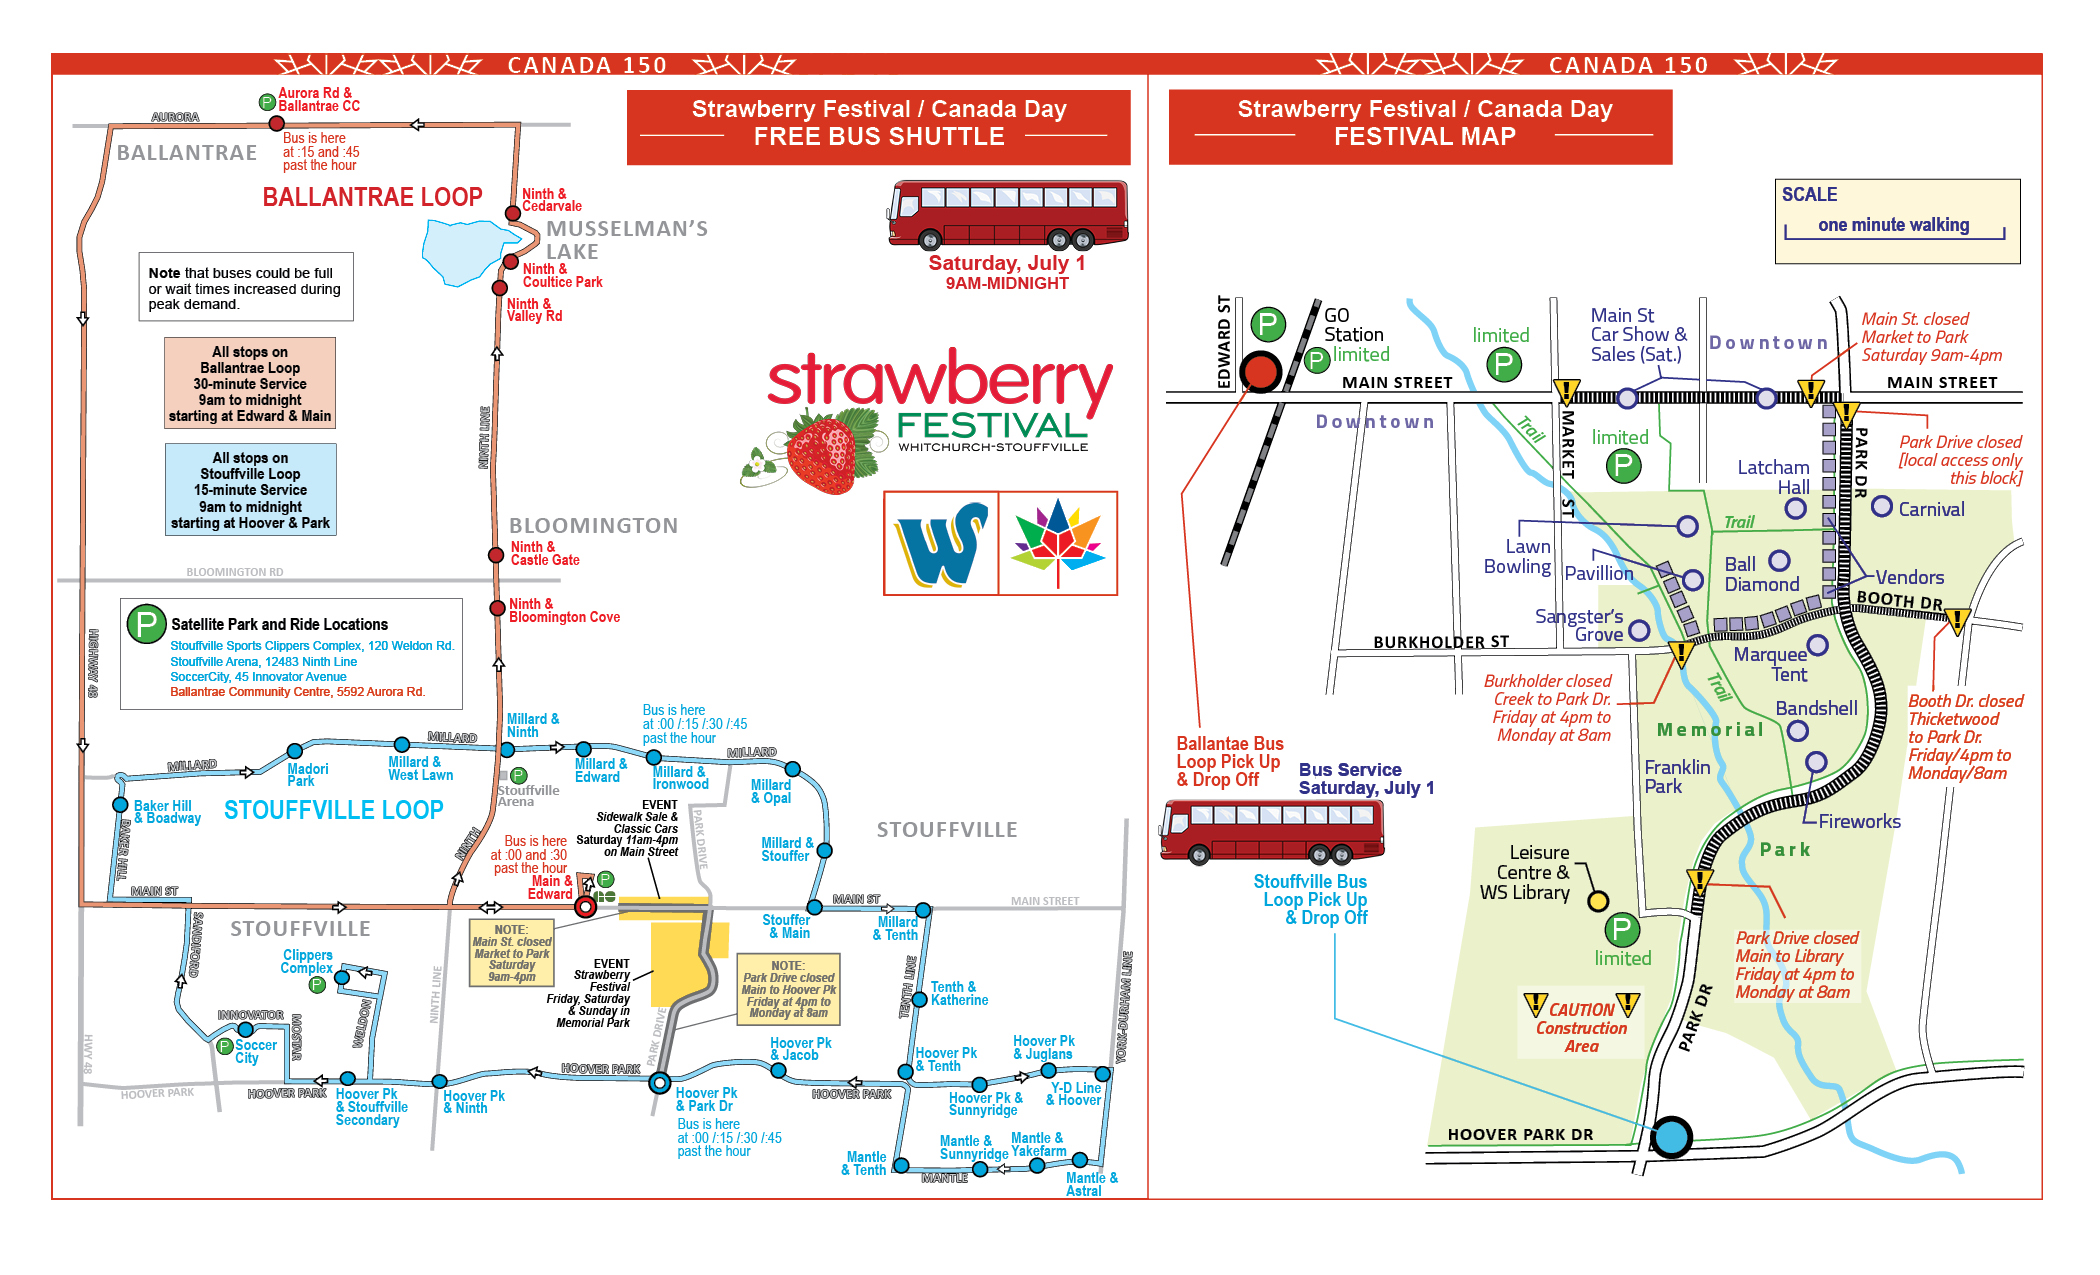 Canada Day Map & Bus Shuttle